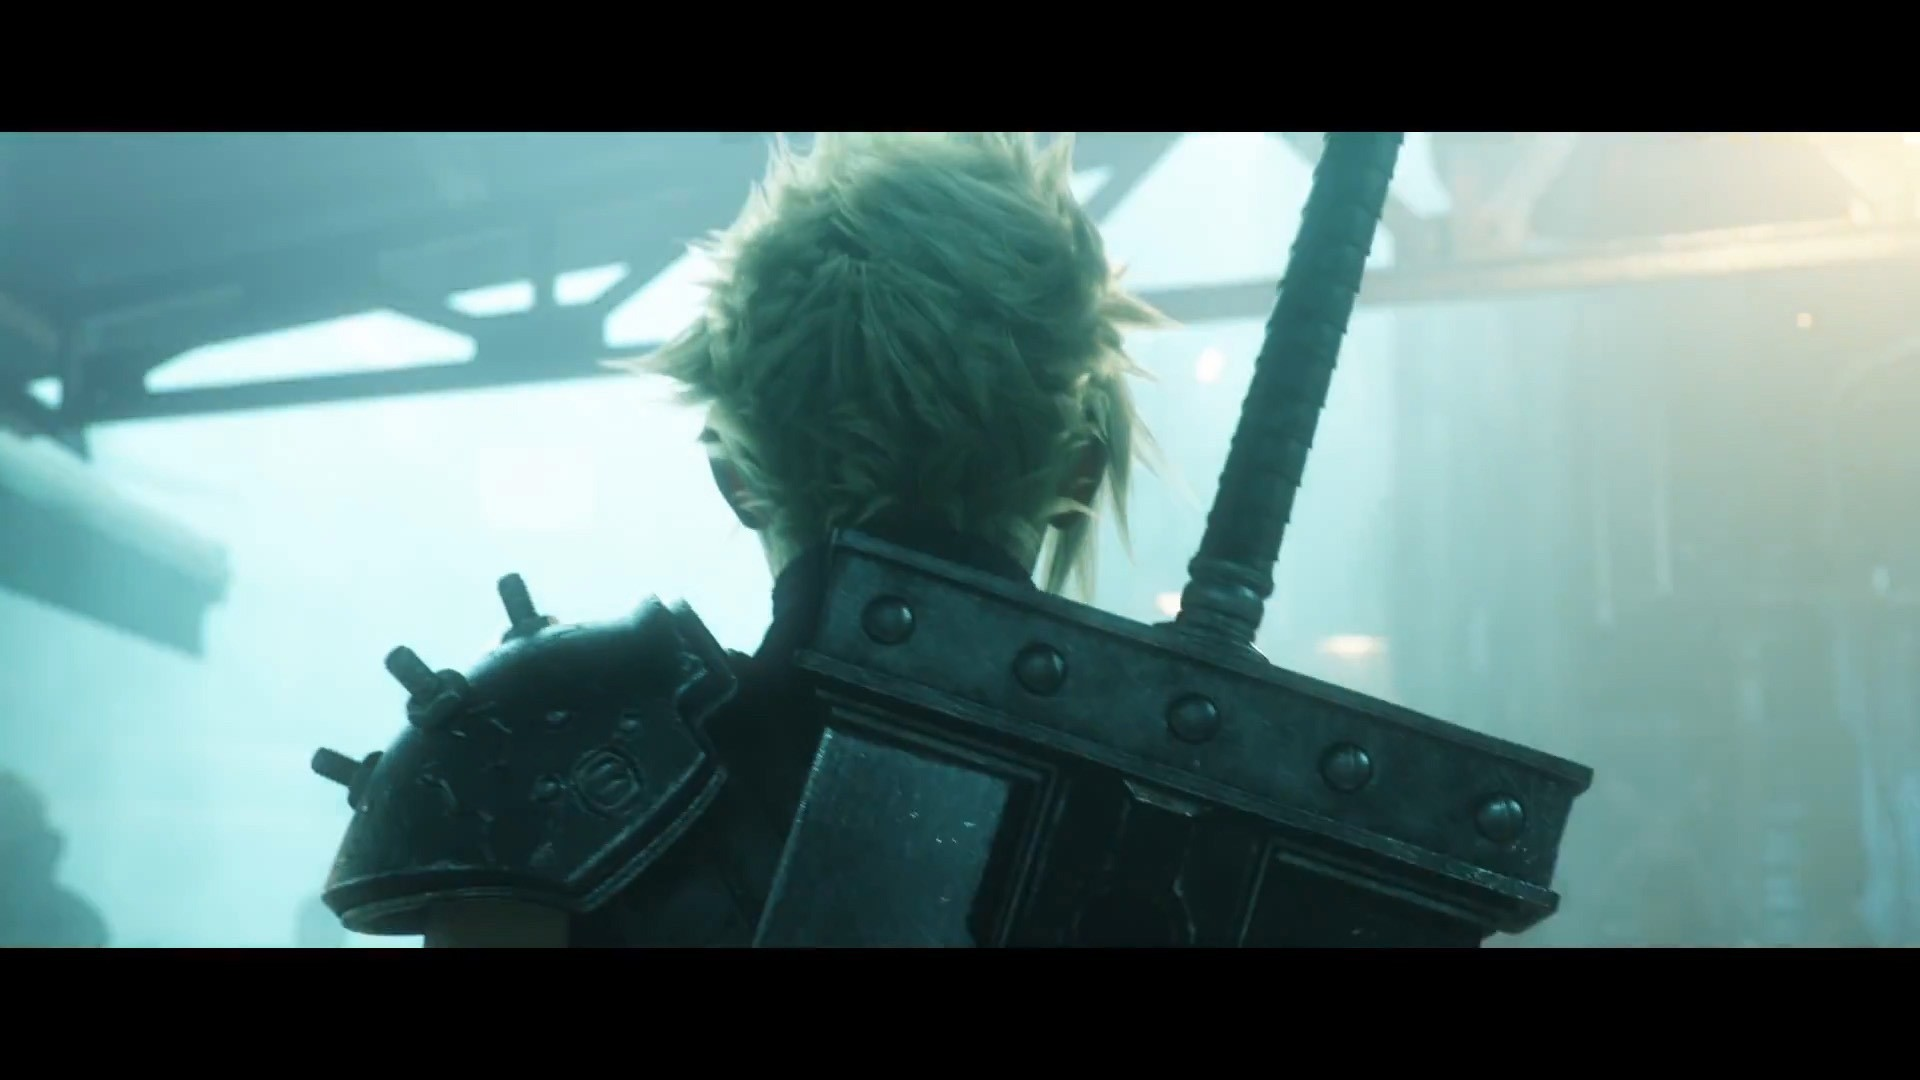 FFVII Remake will NOT be developed on the Luminous Engine